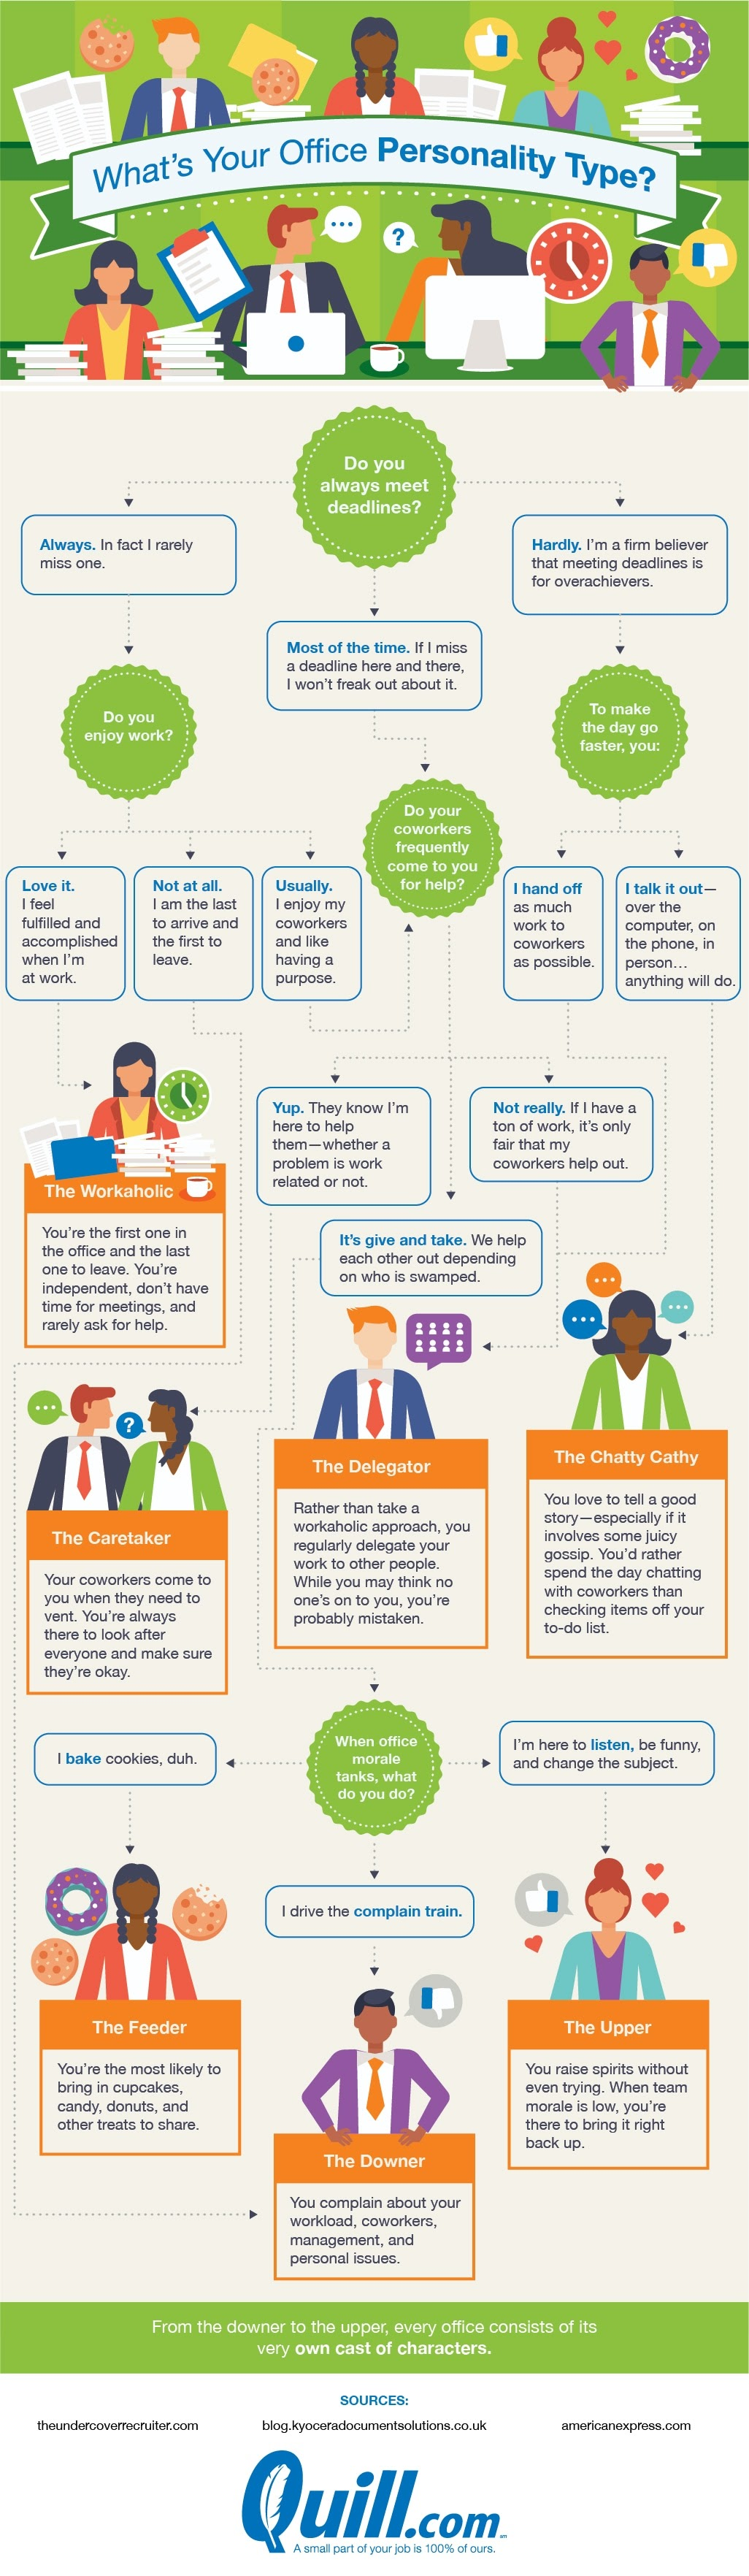 What's your office personality type? #infographic